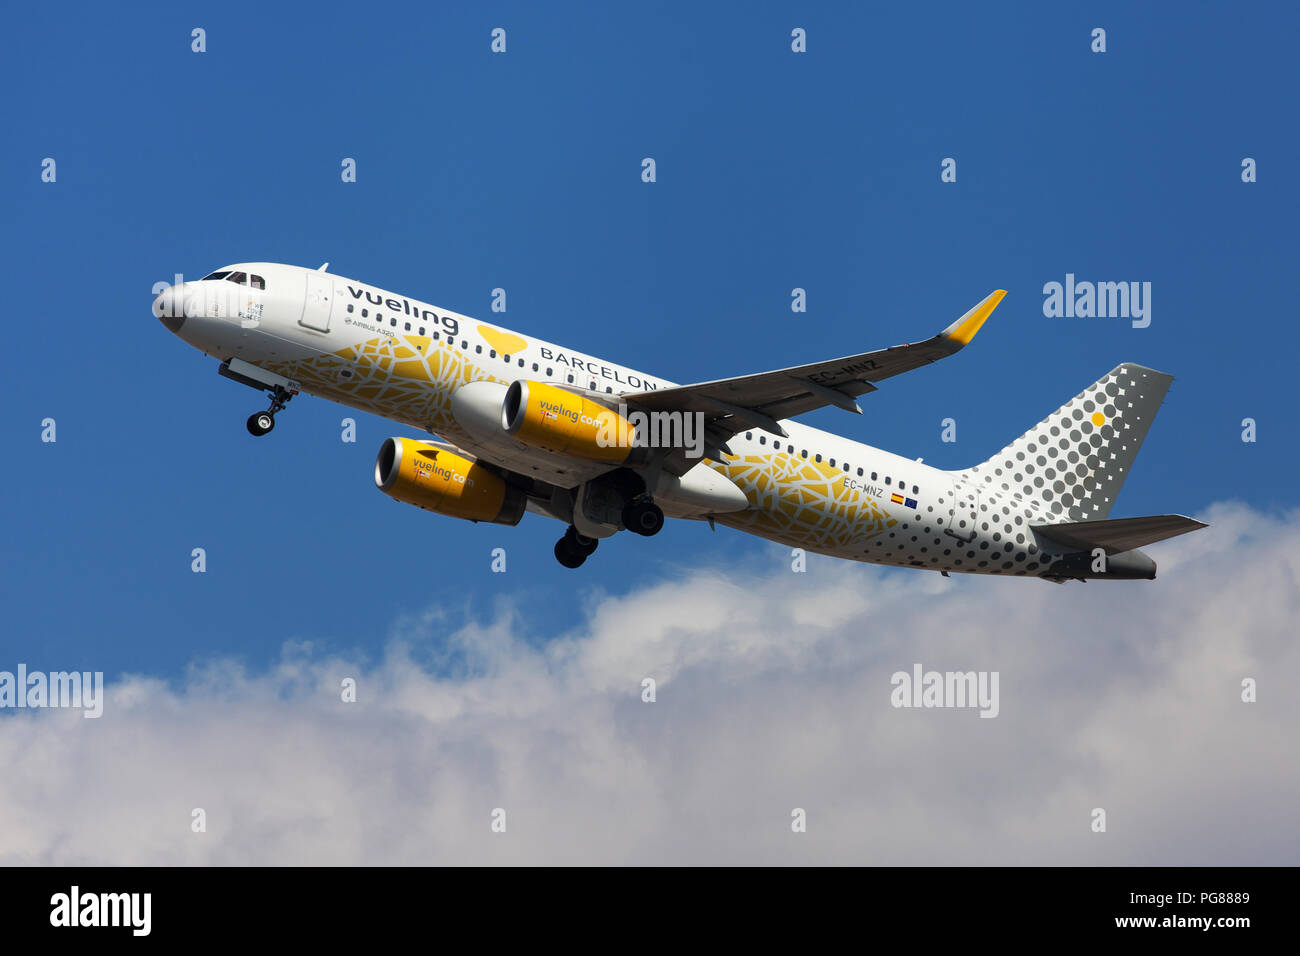 Barcelona, Spain - August 15, 2018: Vueling Airbus A320 with Vueling Loves Barcelona special livery taking off from El Prat Airport in Barcelona, Spai - Stock Image